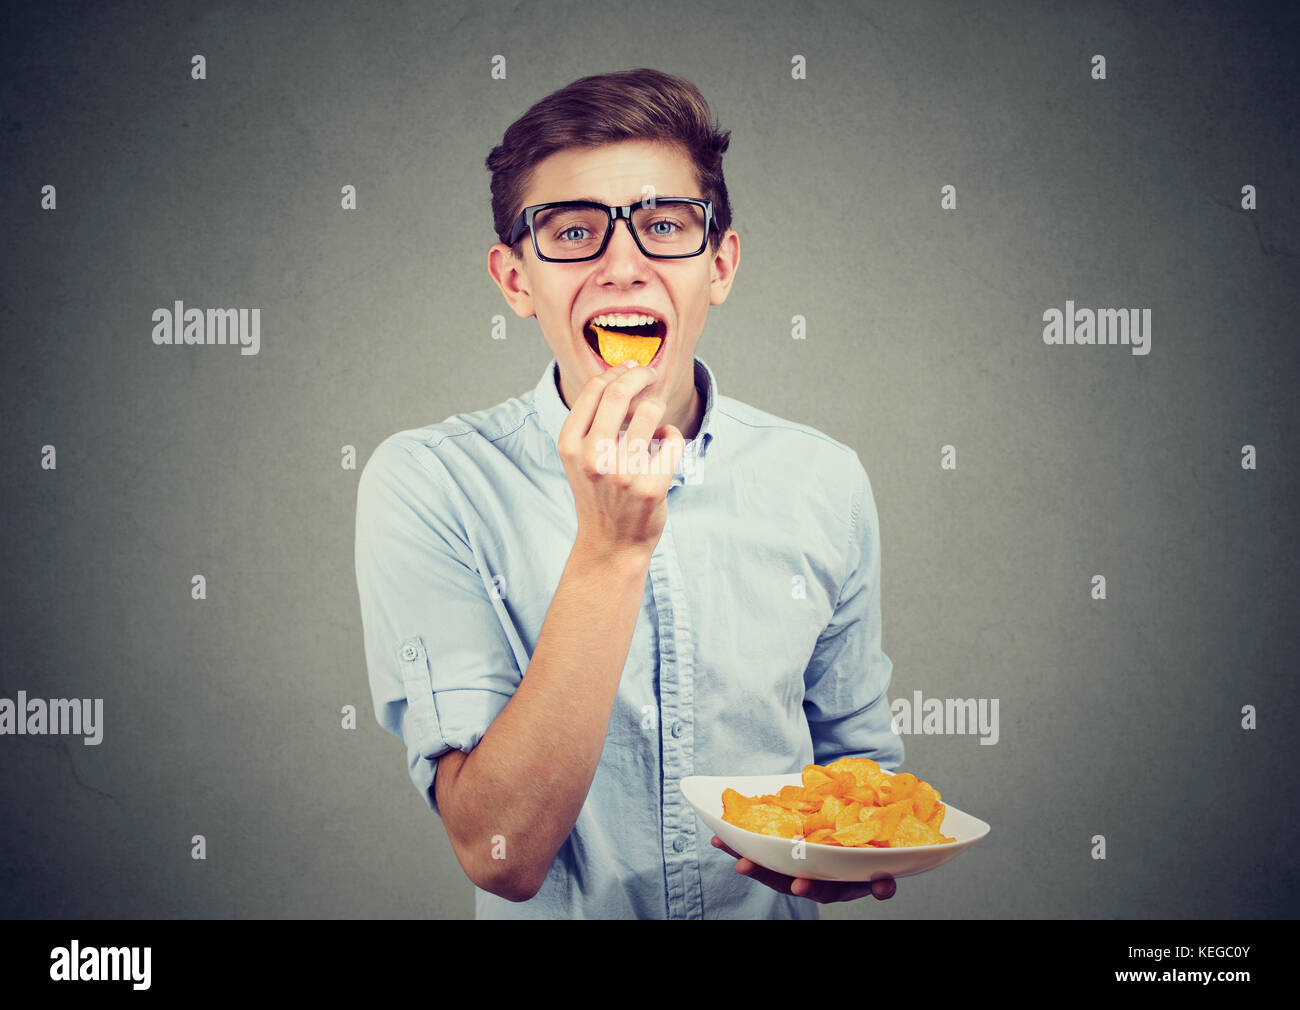 Young man eating potato chips - Stock Image